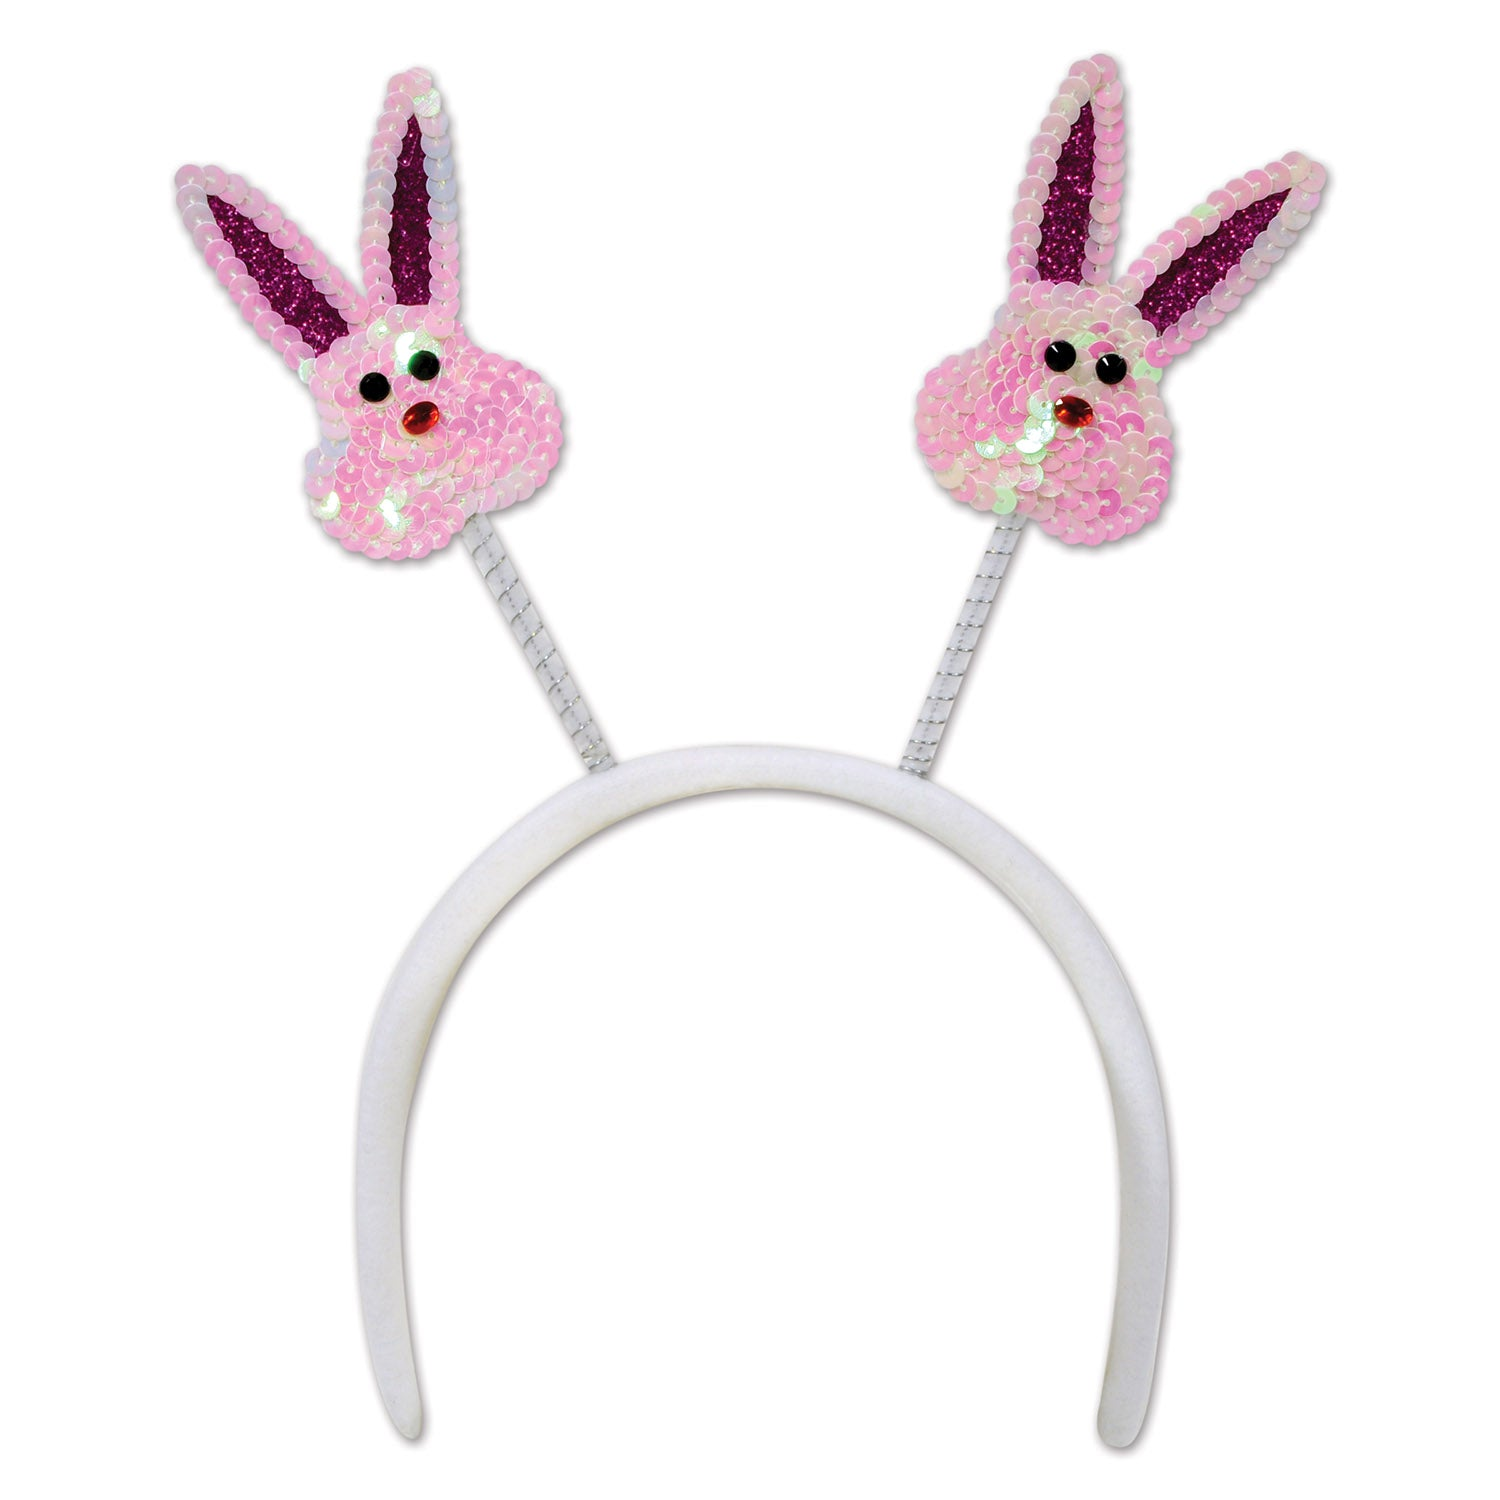 Sequined Bunny Boppers by Beistle - Easter Theme Decorations